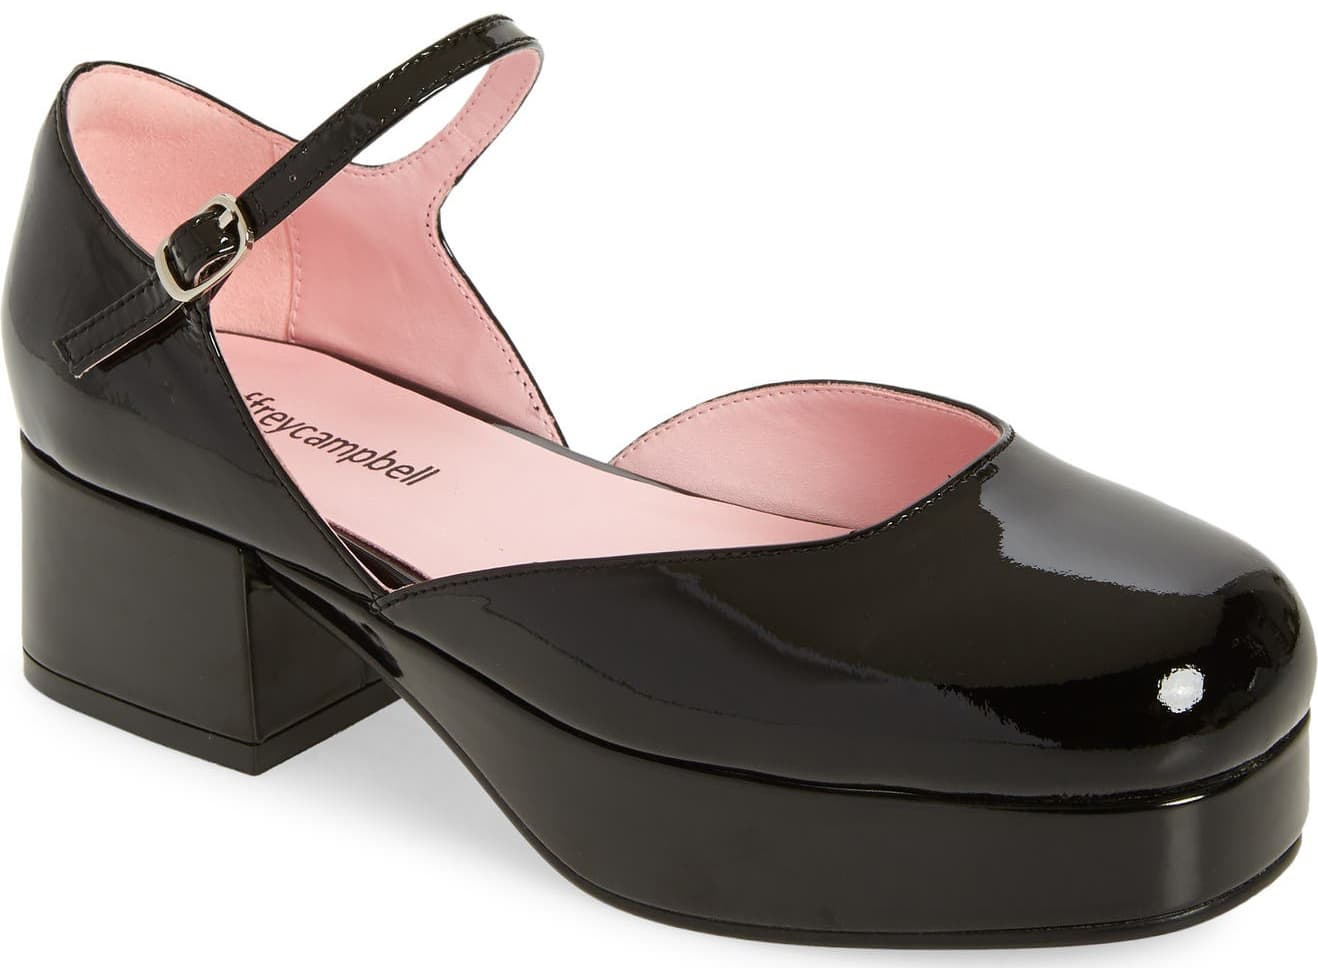 Glossy patent leather intensifies the appeal of a Mary Jane-inspired pump from Jeffrey Campbell set on a blocky heel